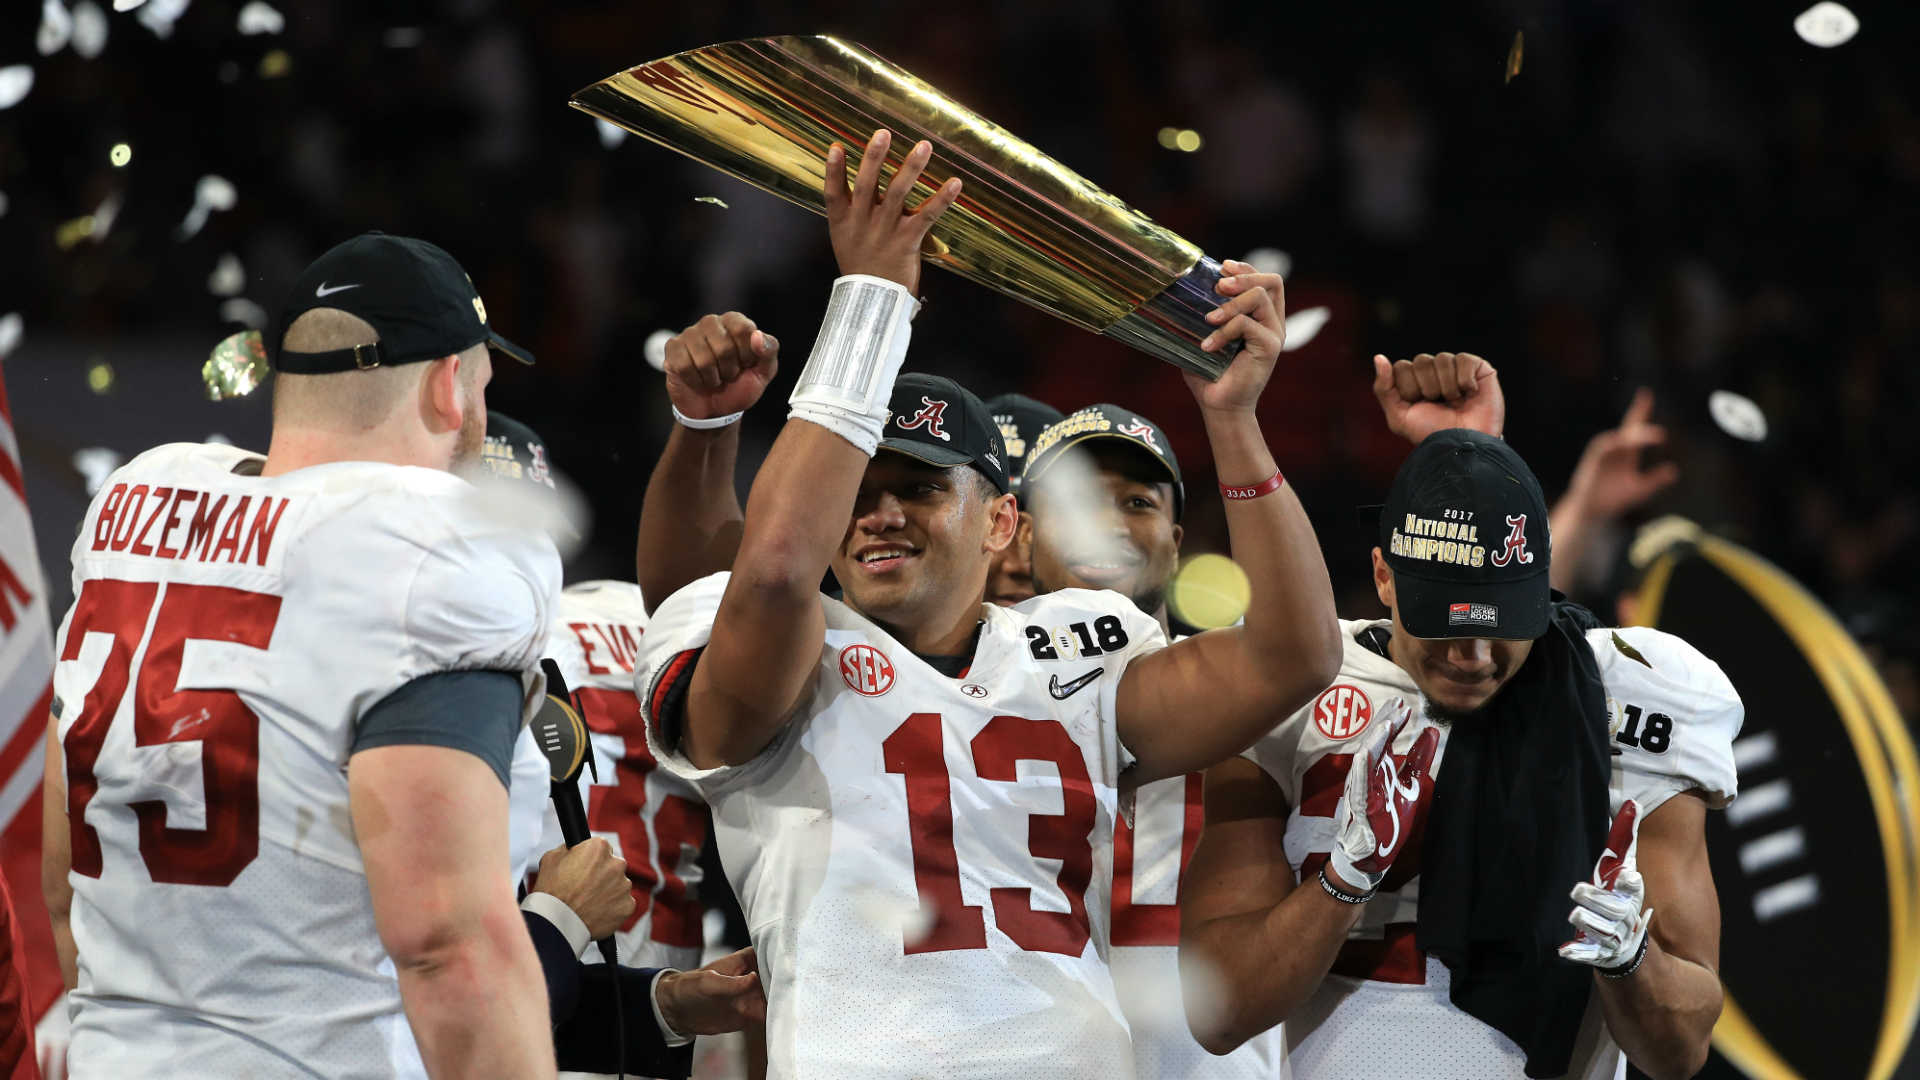 Kirk Herbstreit Reacts To Alabama's National Title Win